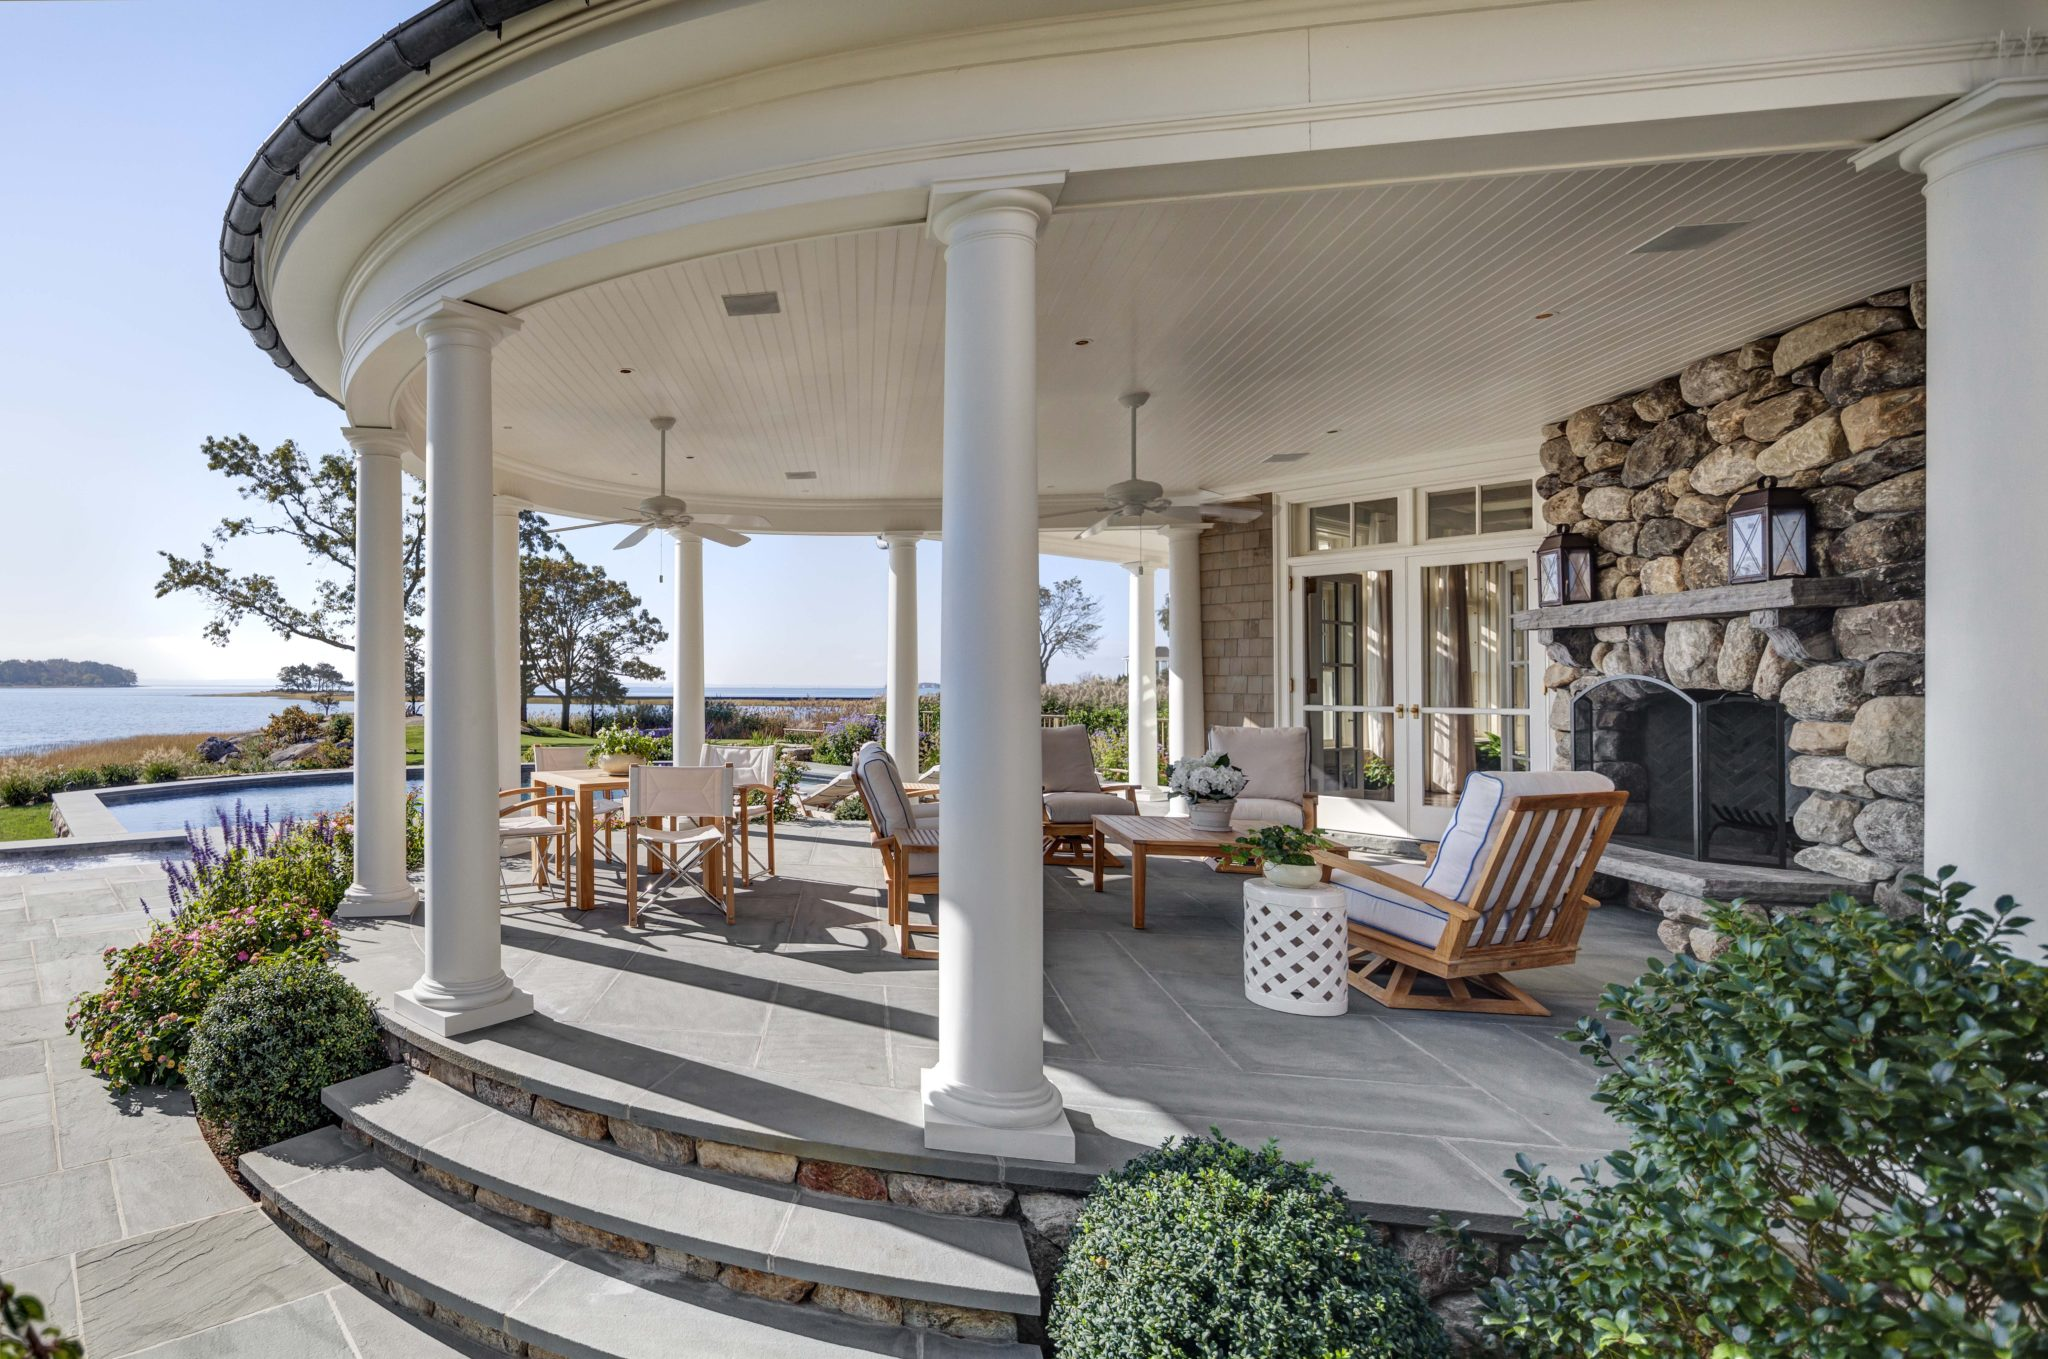 New England Shingle Style Covered Porch by Charles Hilton Architects